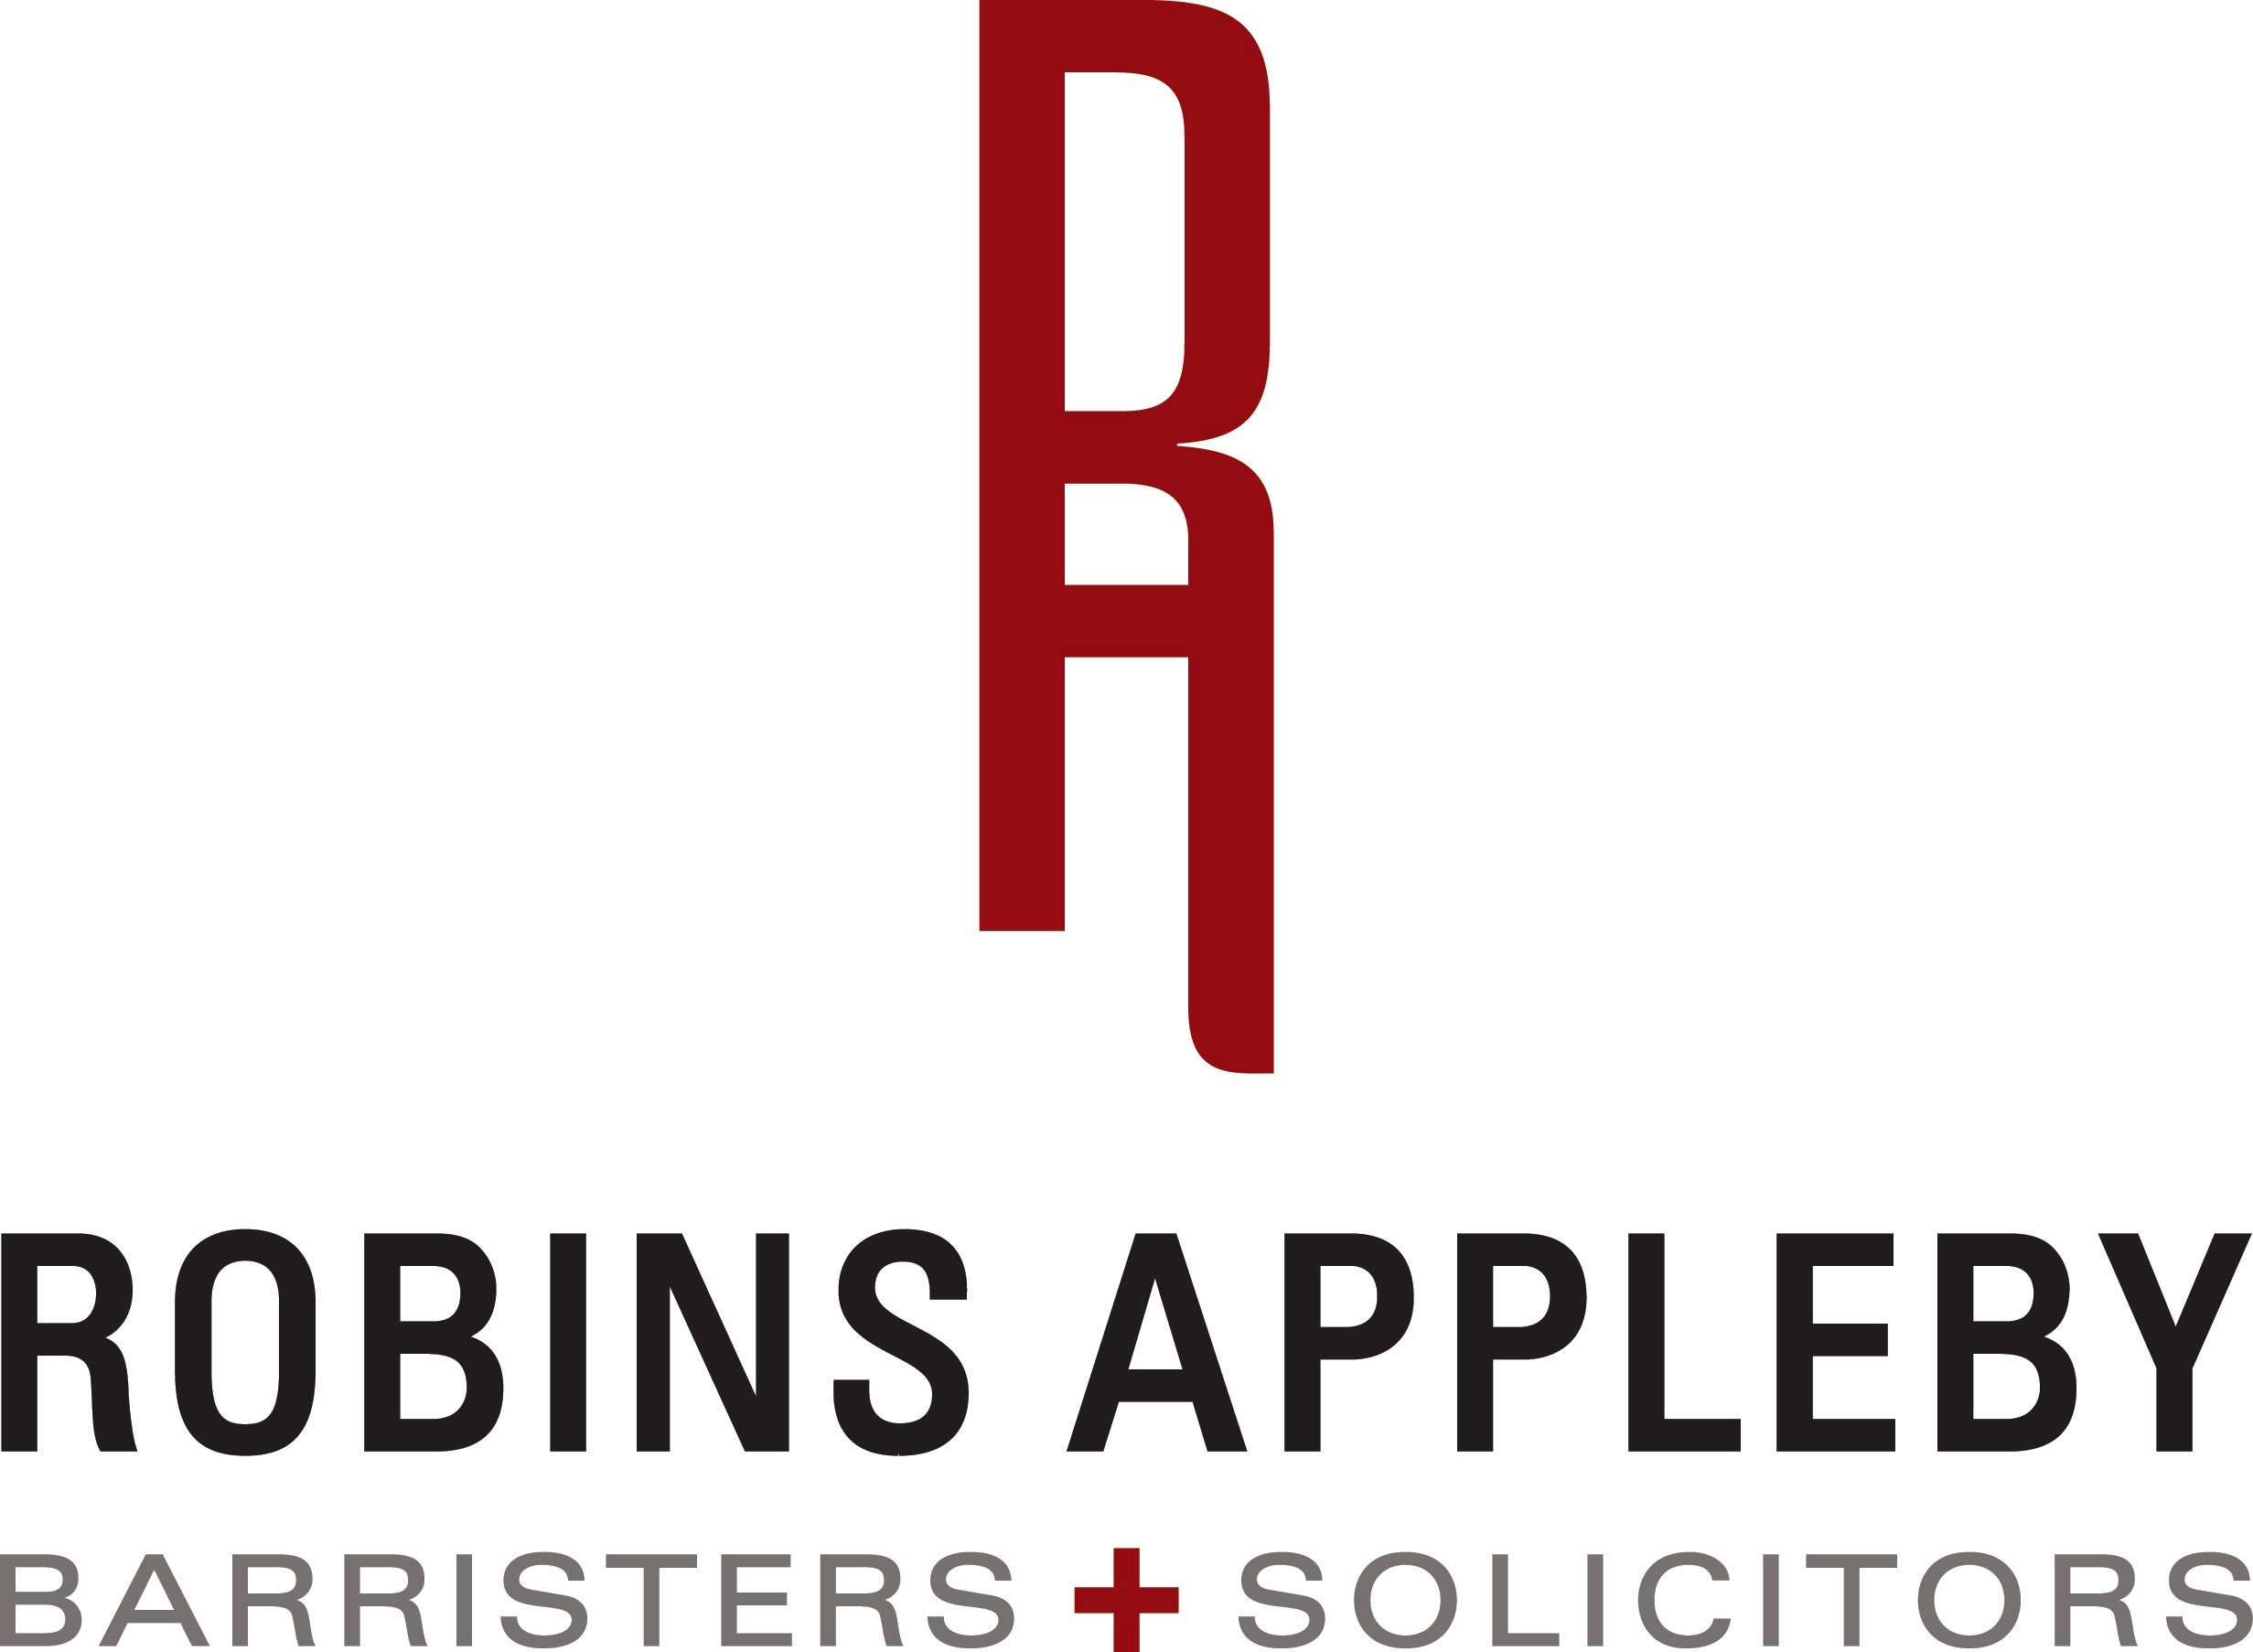 Robins Appleby Barristers+Solicitors